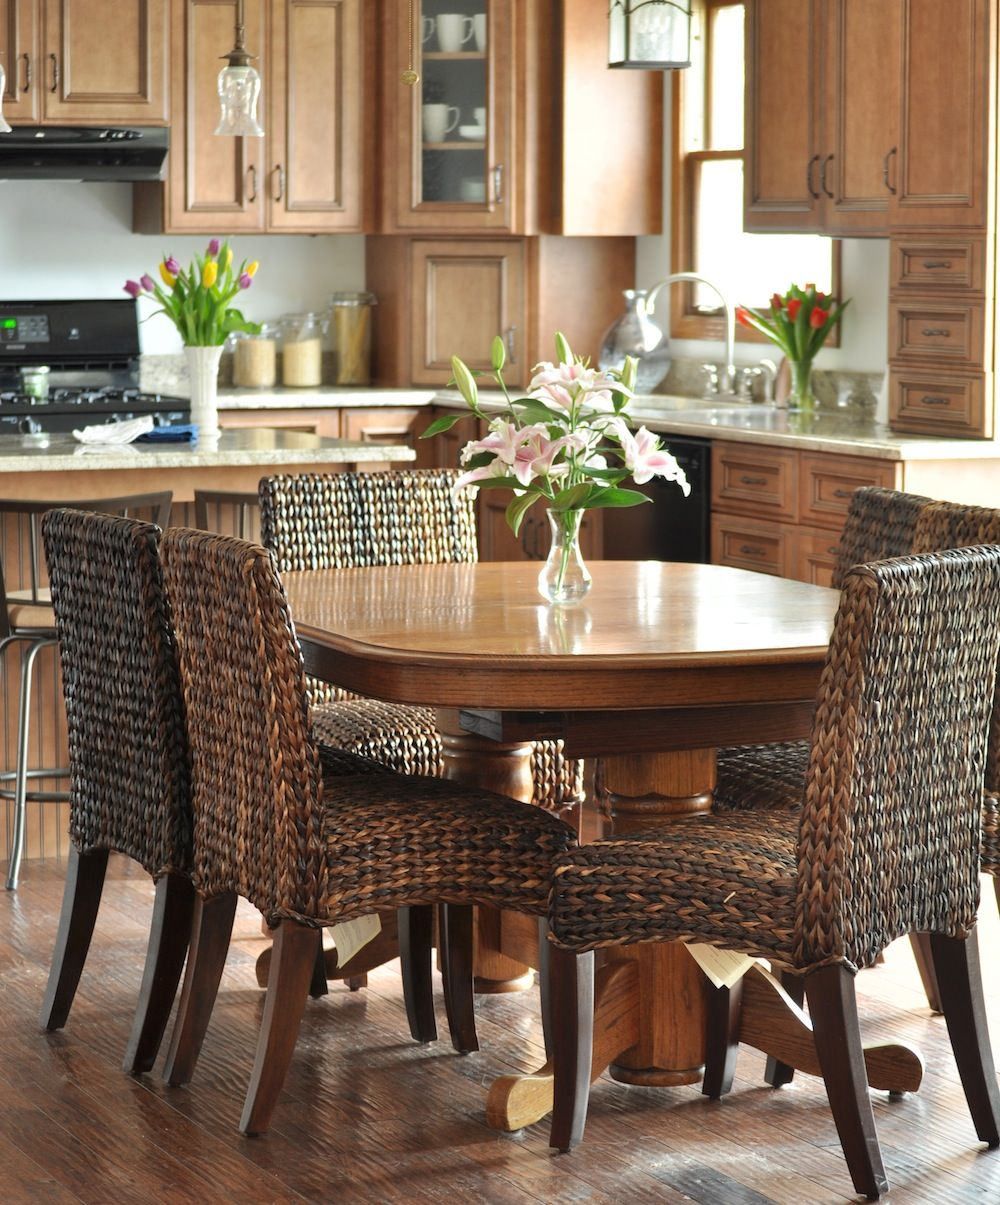 Jennifer Rizzo S Kitchen Refresh Featuring Pottery Barn Seagrass Chair